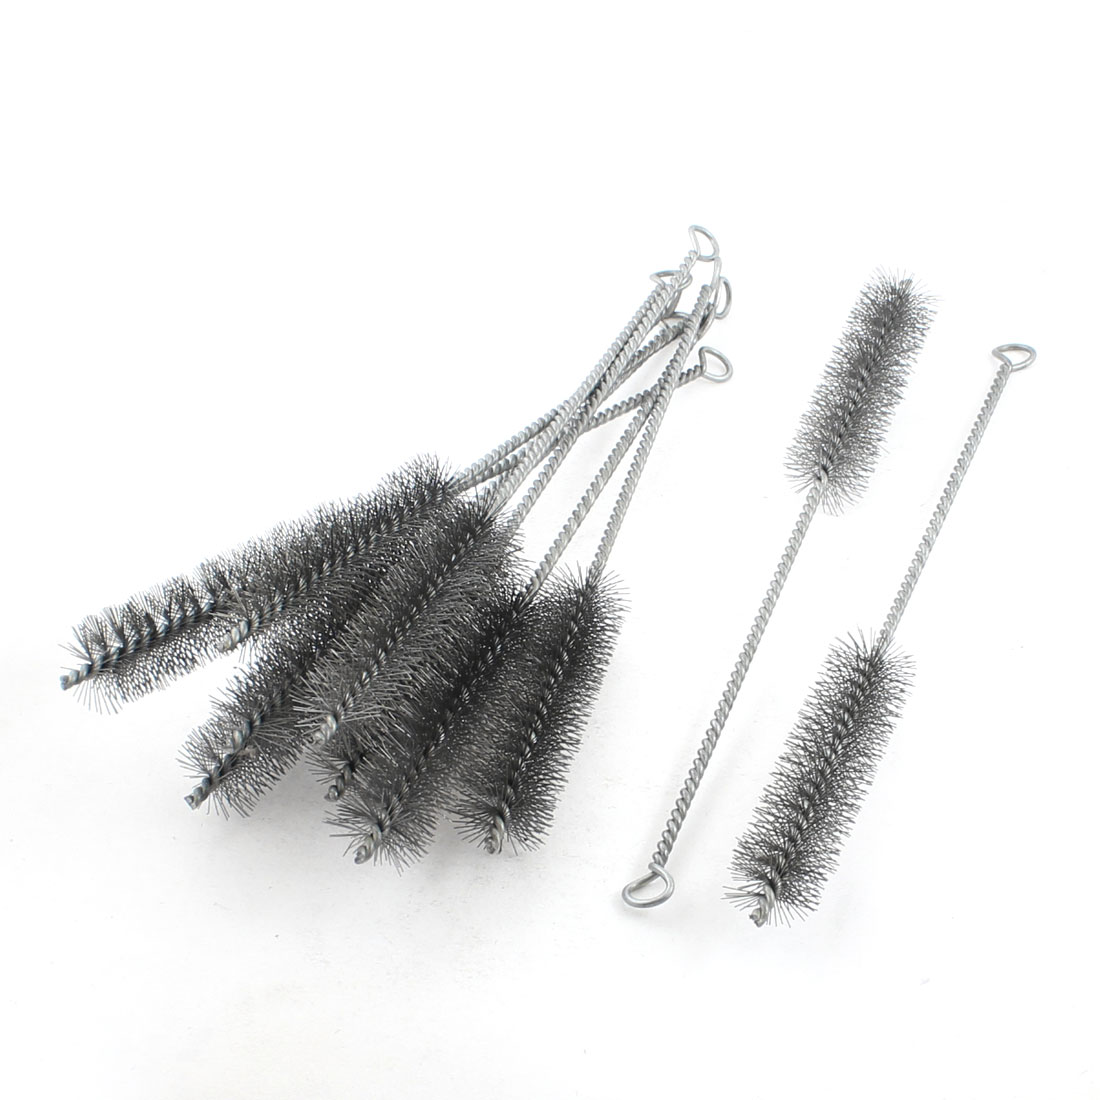 10Pcs 30mm Diameter Steel Wire Tube Brush Cleaning Tool 32cm Length